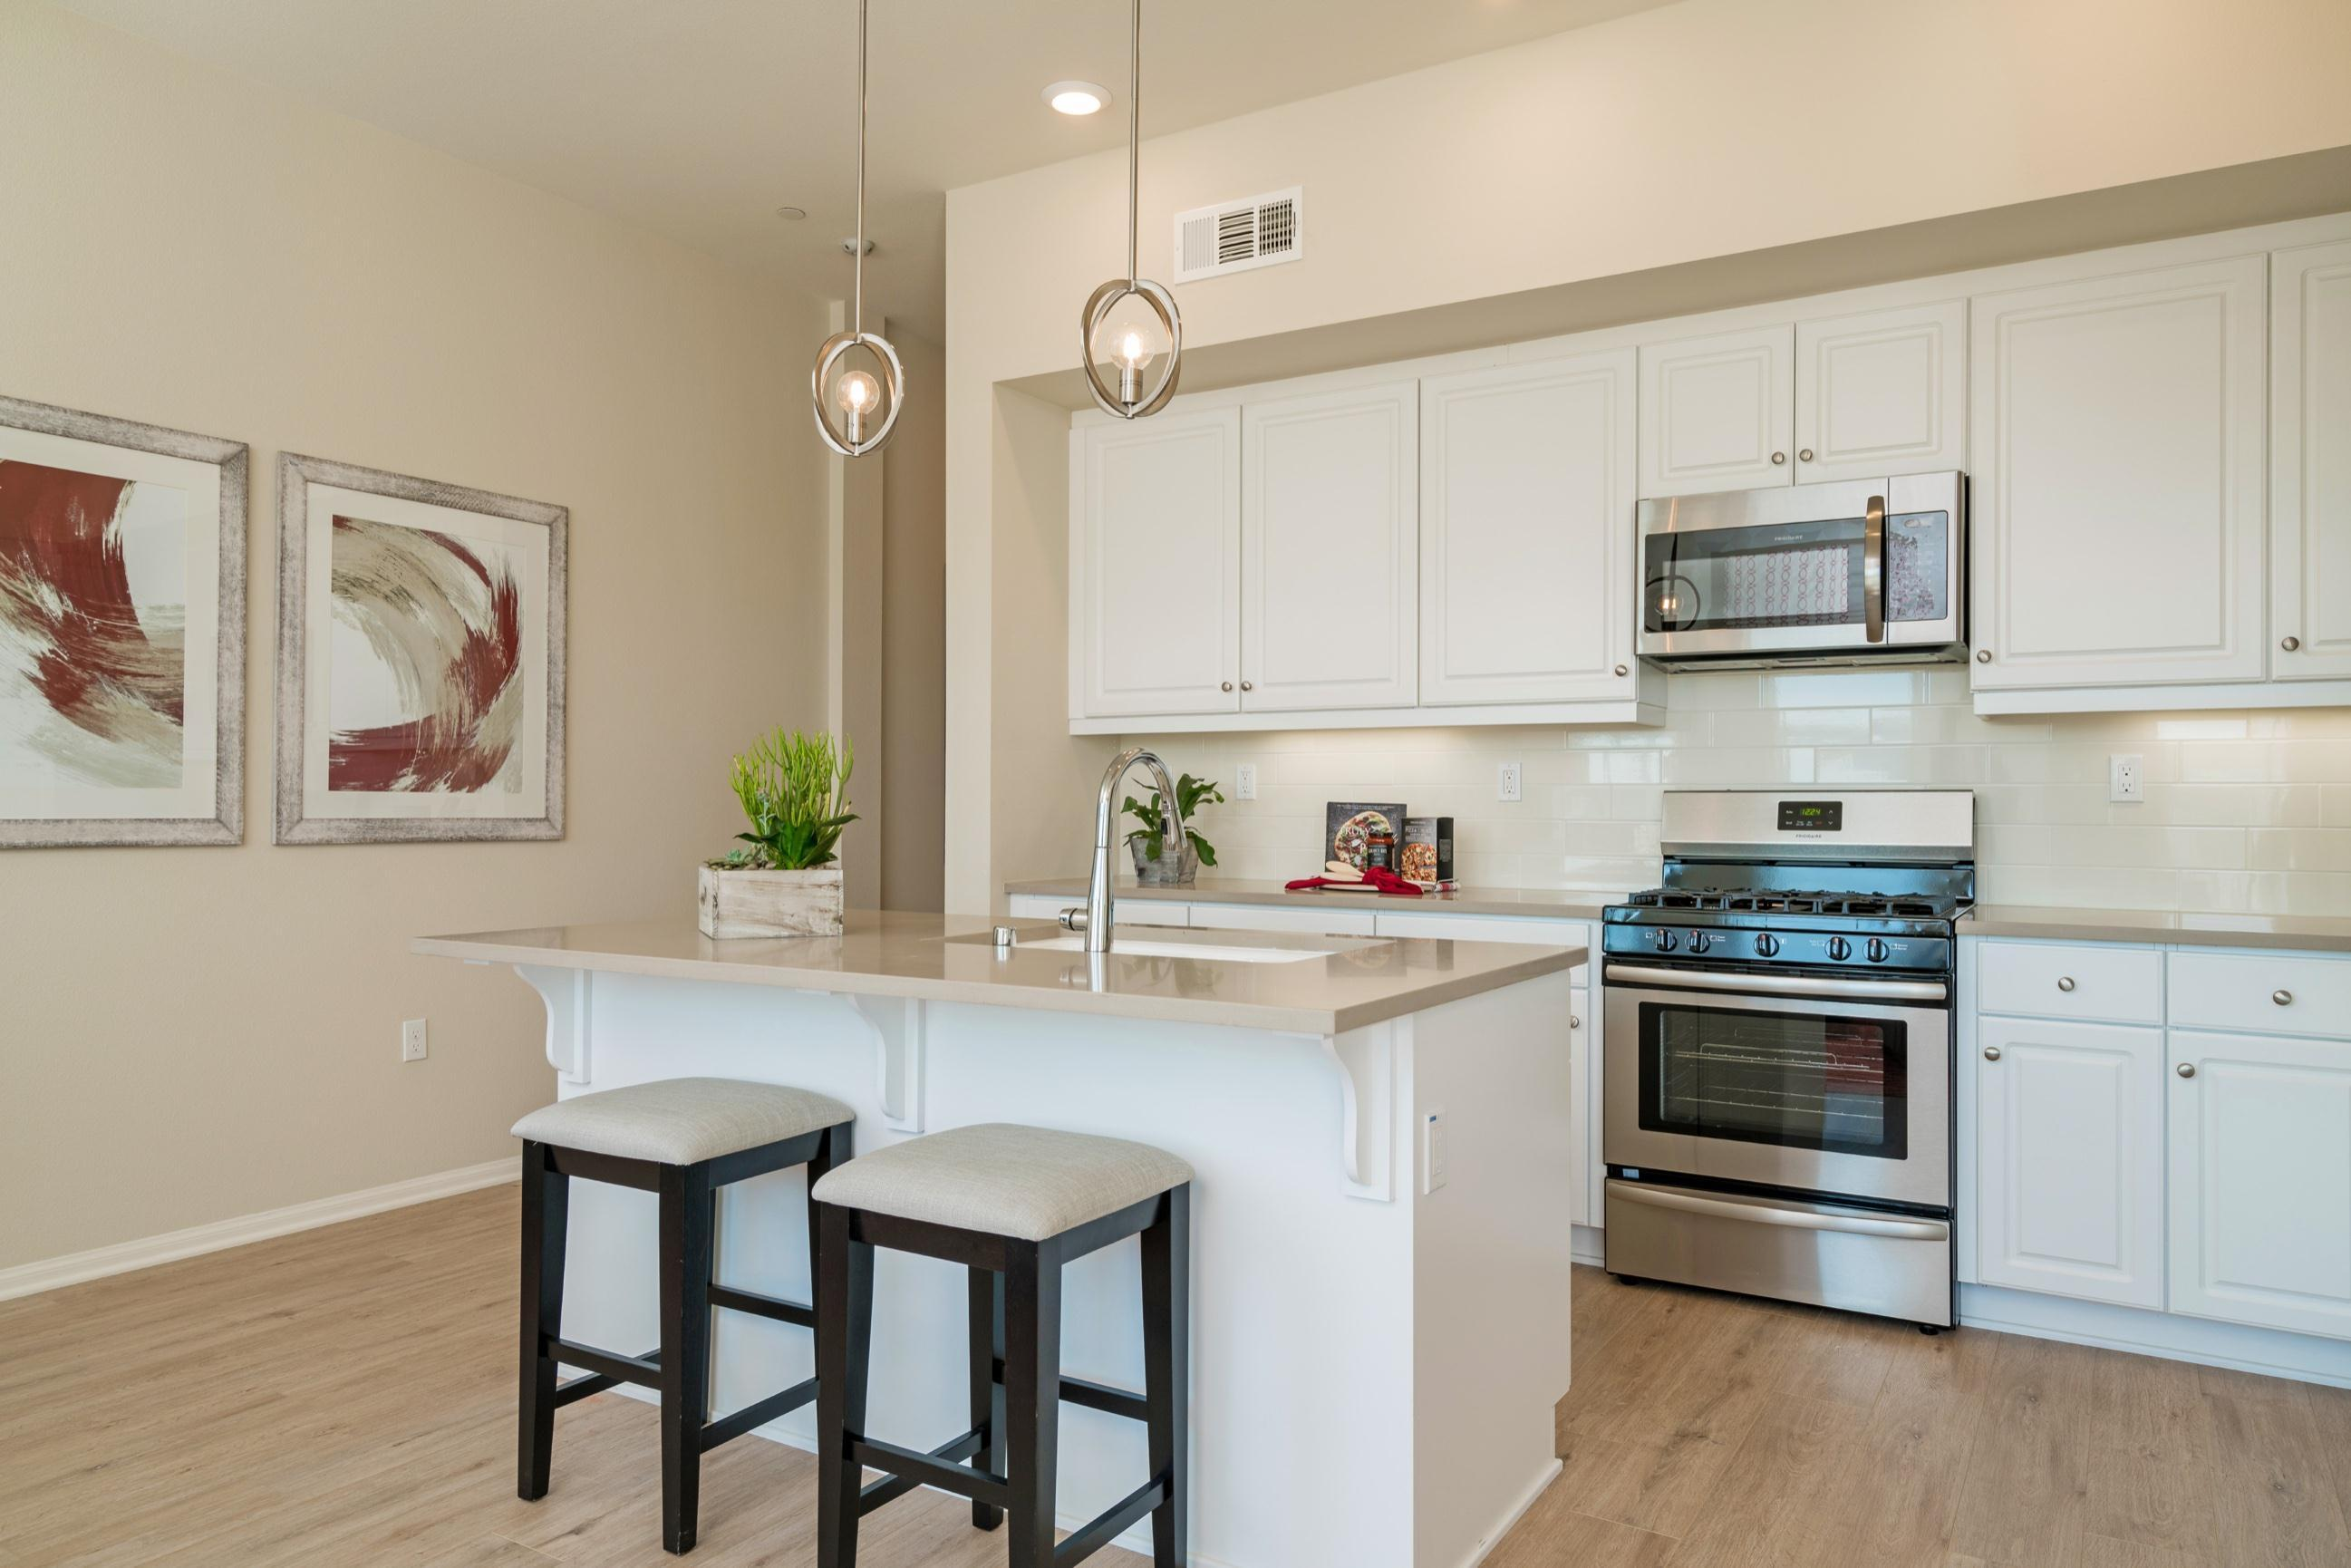 Kitchen featured in the Plan 1 By Heritage Building & Dev't in San Diego, CA